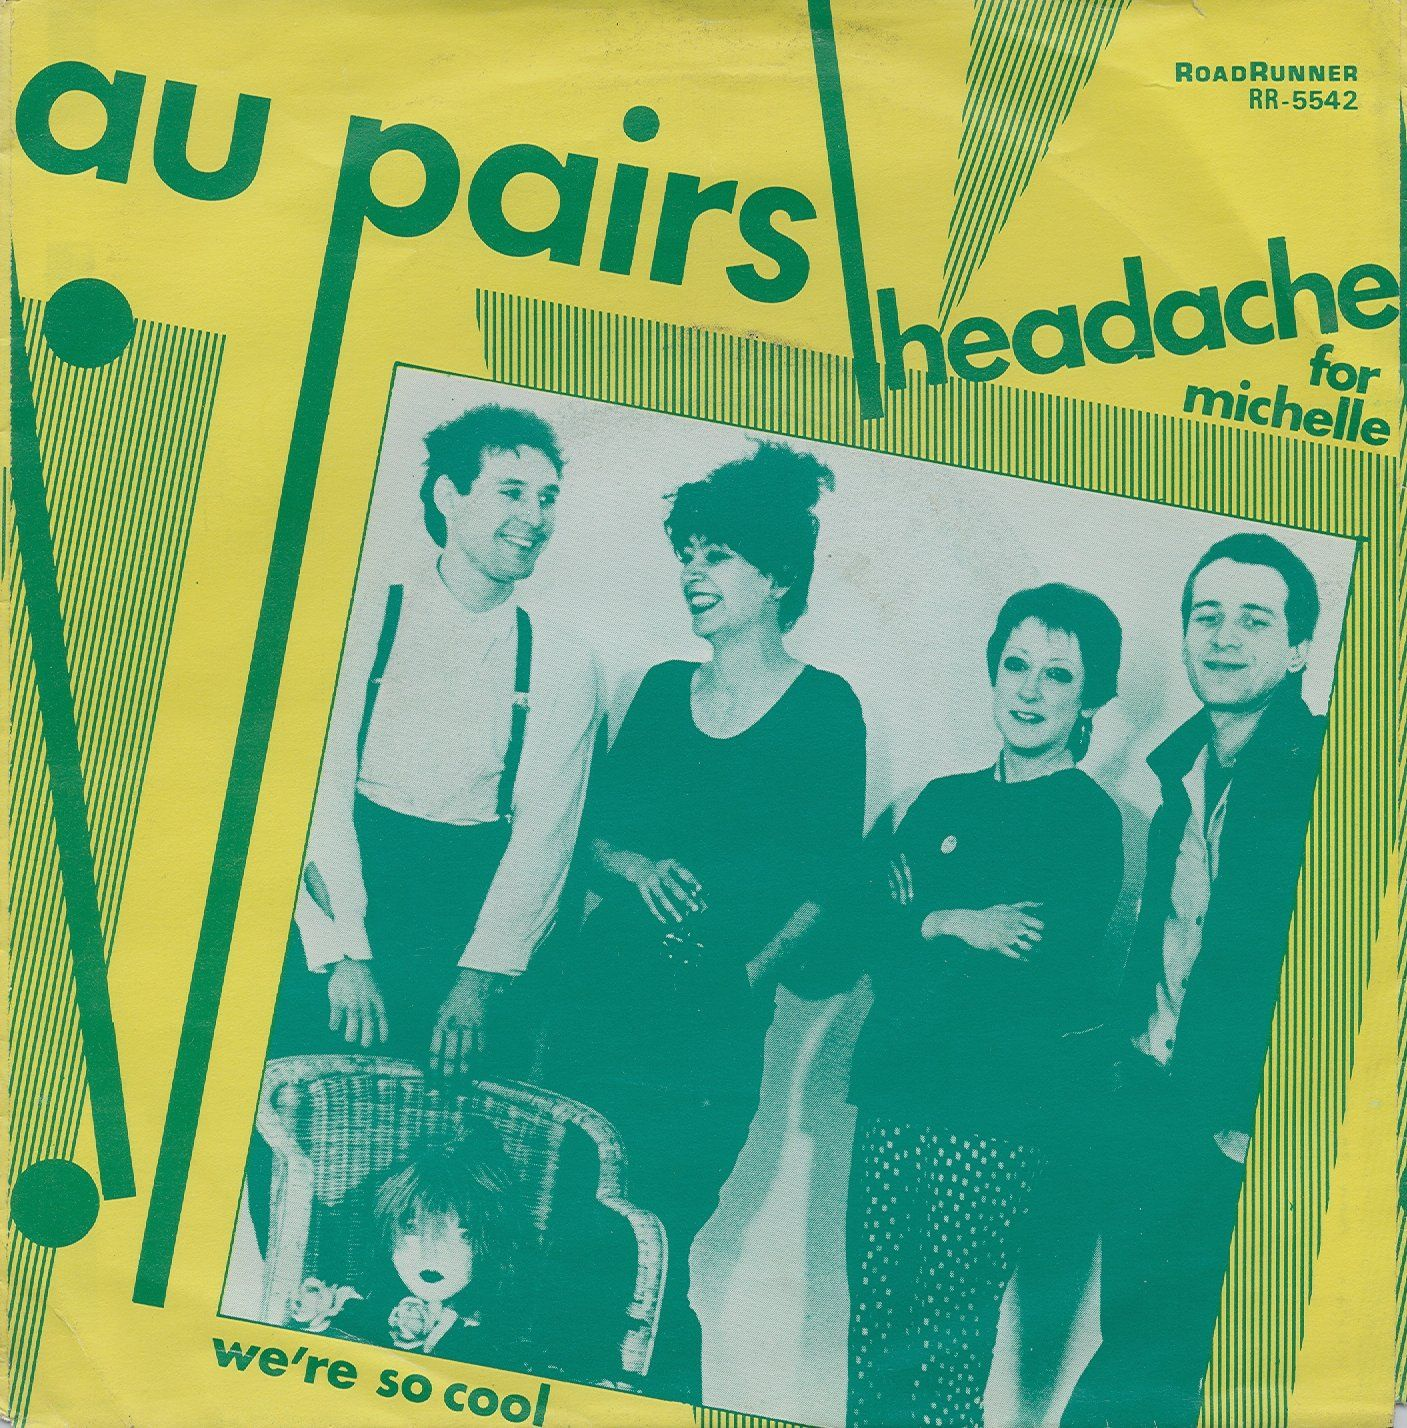 """Au Pairs - Headache For Michelle [1981, Roadrunner Records RR 5542│Netherlands] - 7""""/45 vinyl record"""